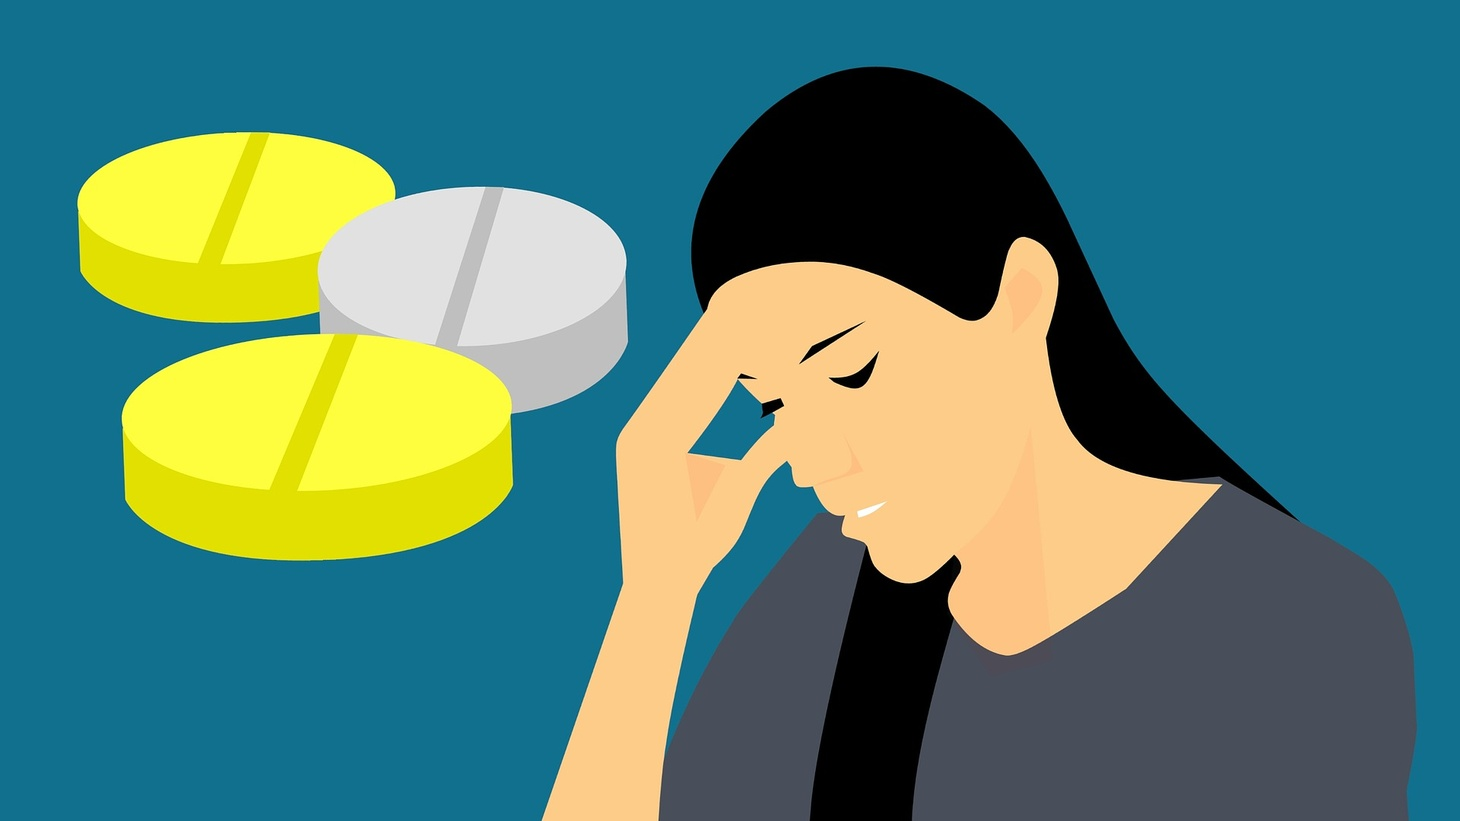 Some say migraine can be triggered by caffeine, dehydration, or even weather changes. It brings an onslaught of pain, light sensitivity, and nausea.